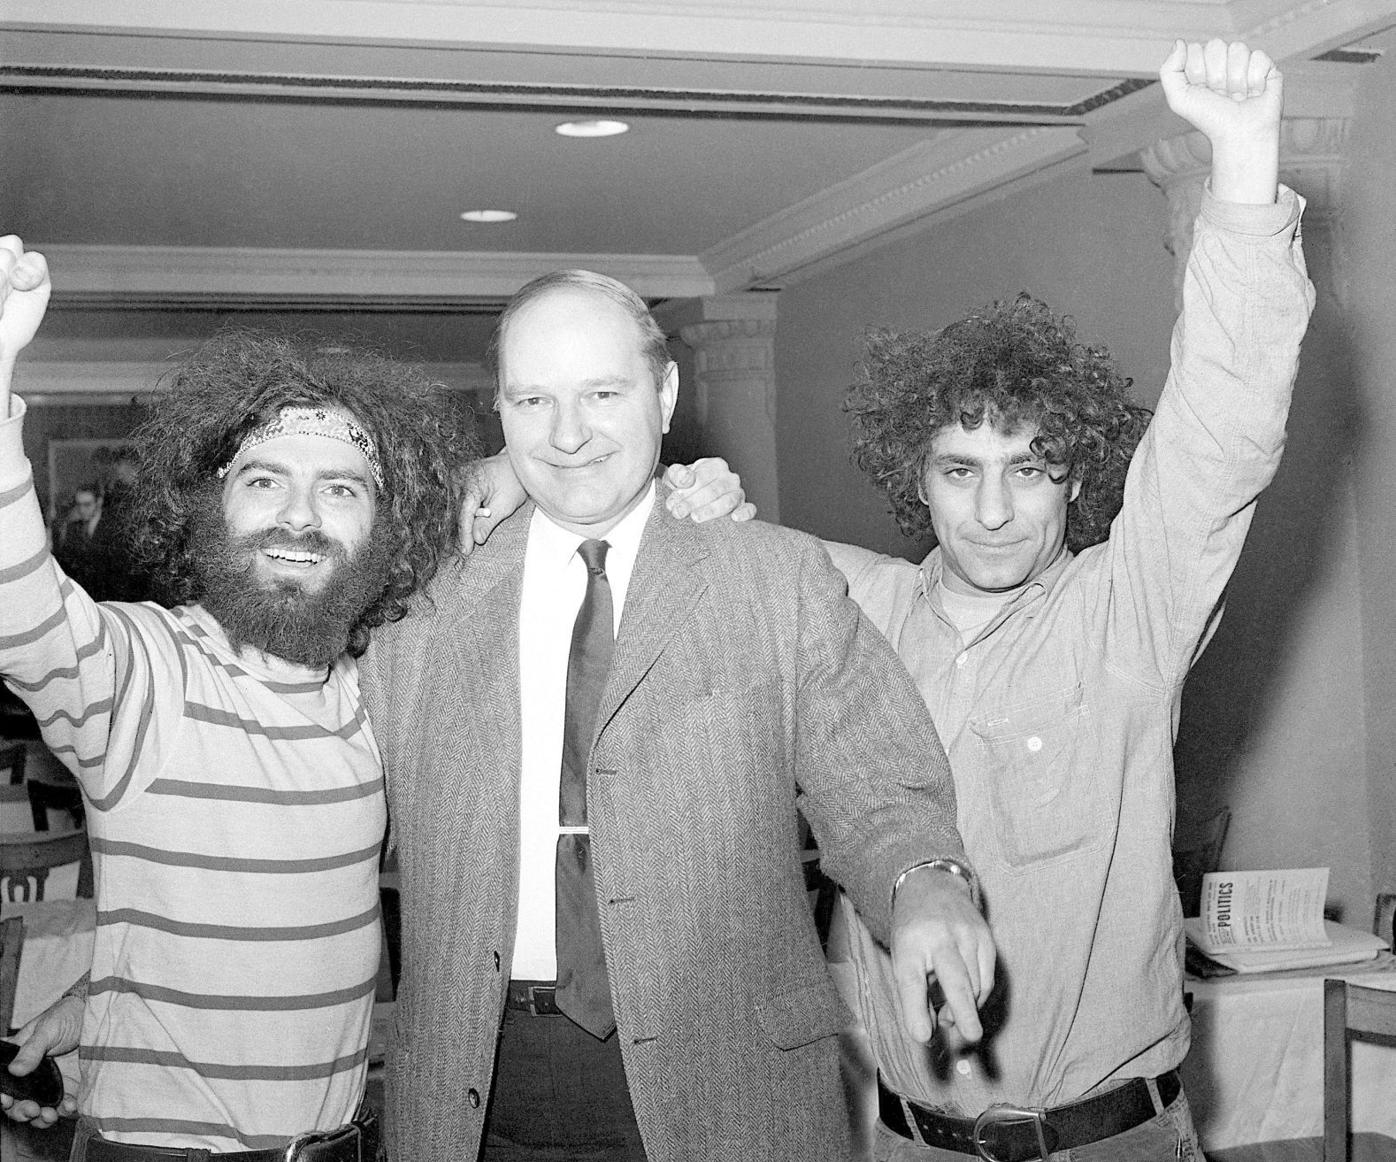 Jerry Rubin, David T. Dellinger and Abby Hoffman